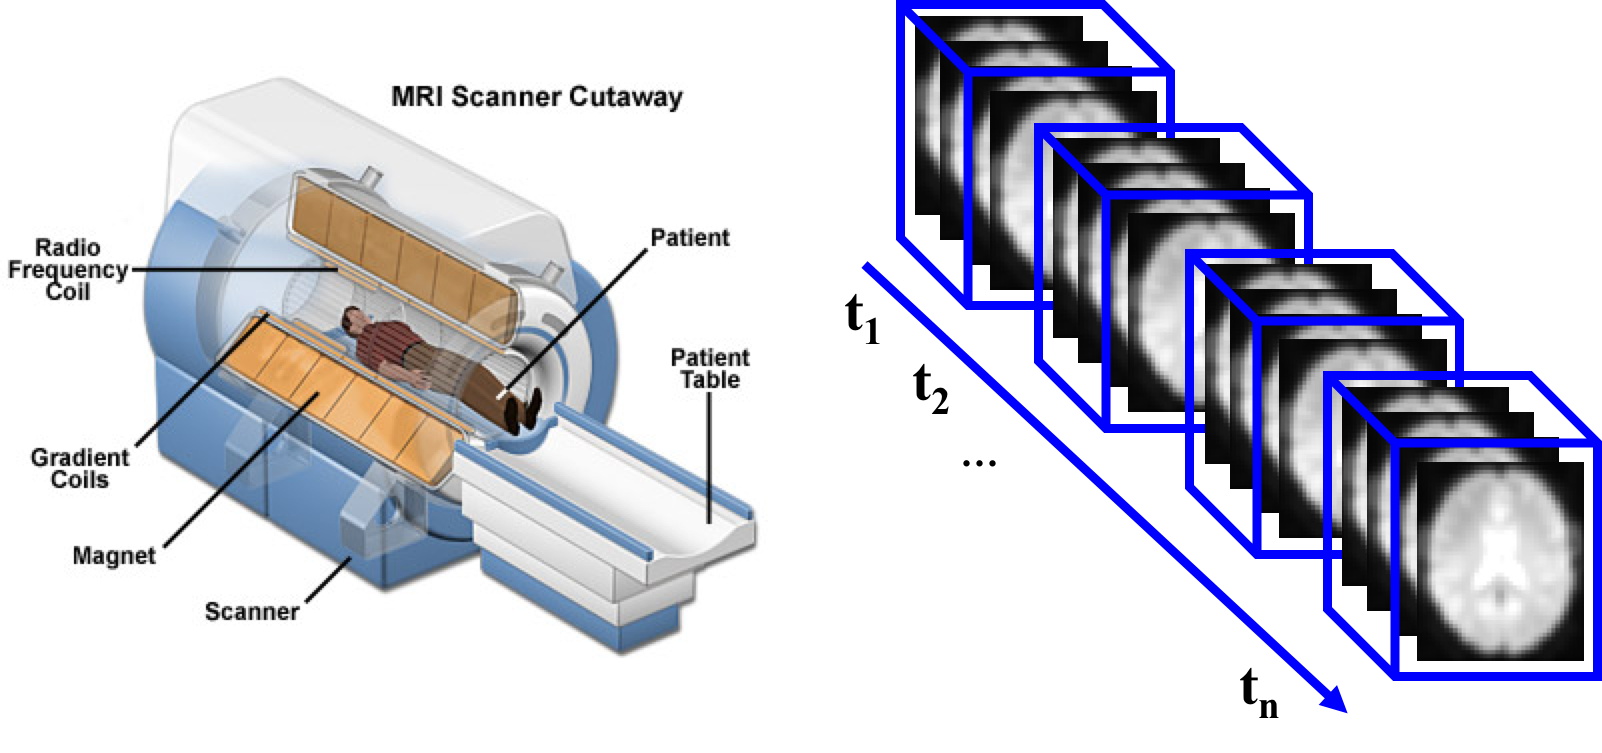 Figure 1: MRI Scanner and rs-fMRI time series acquisition.